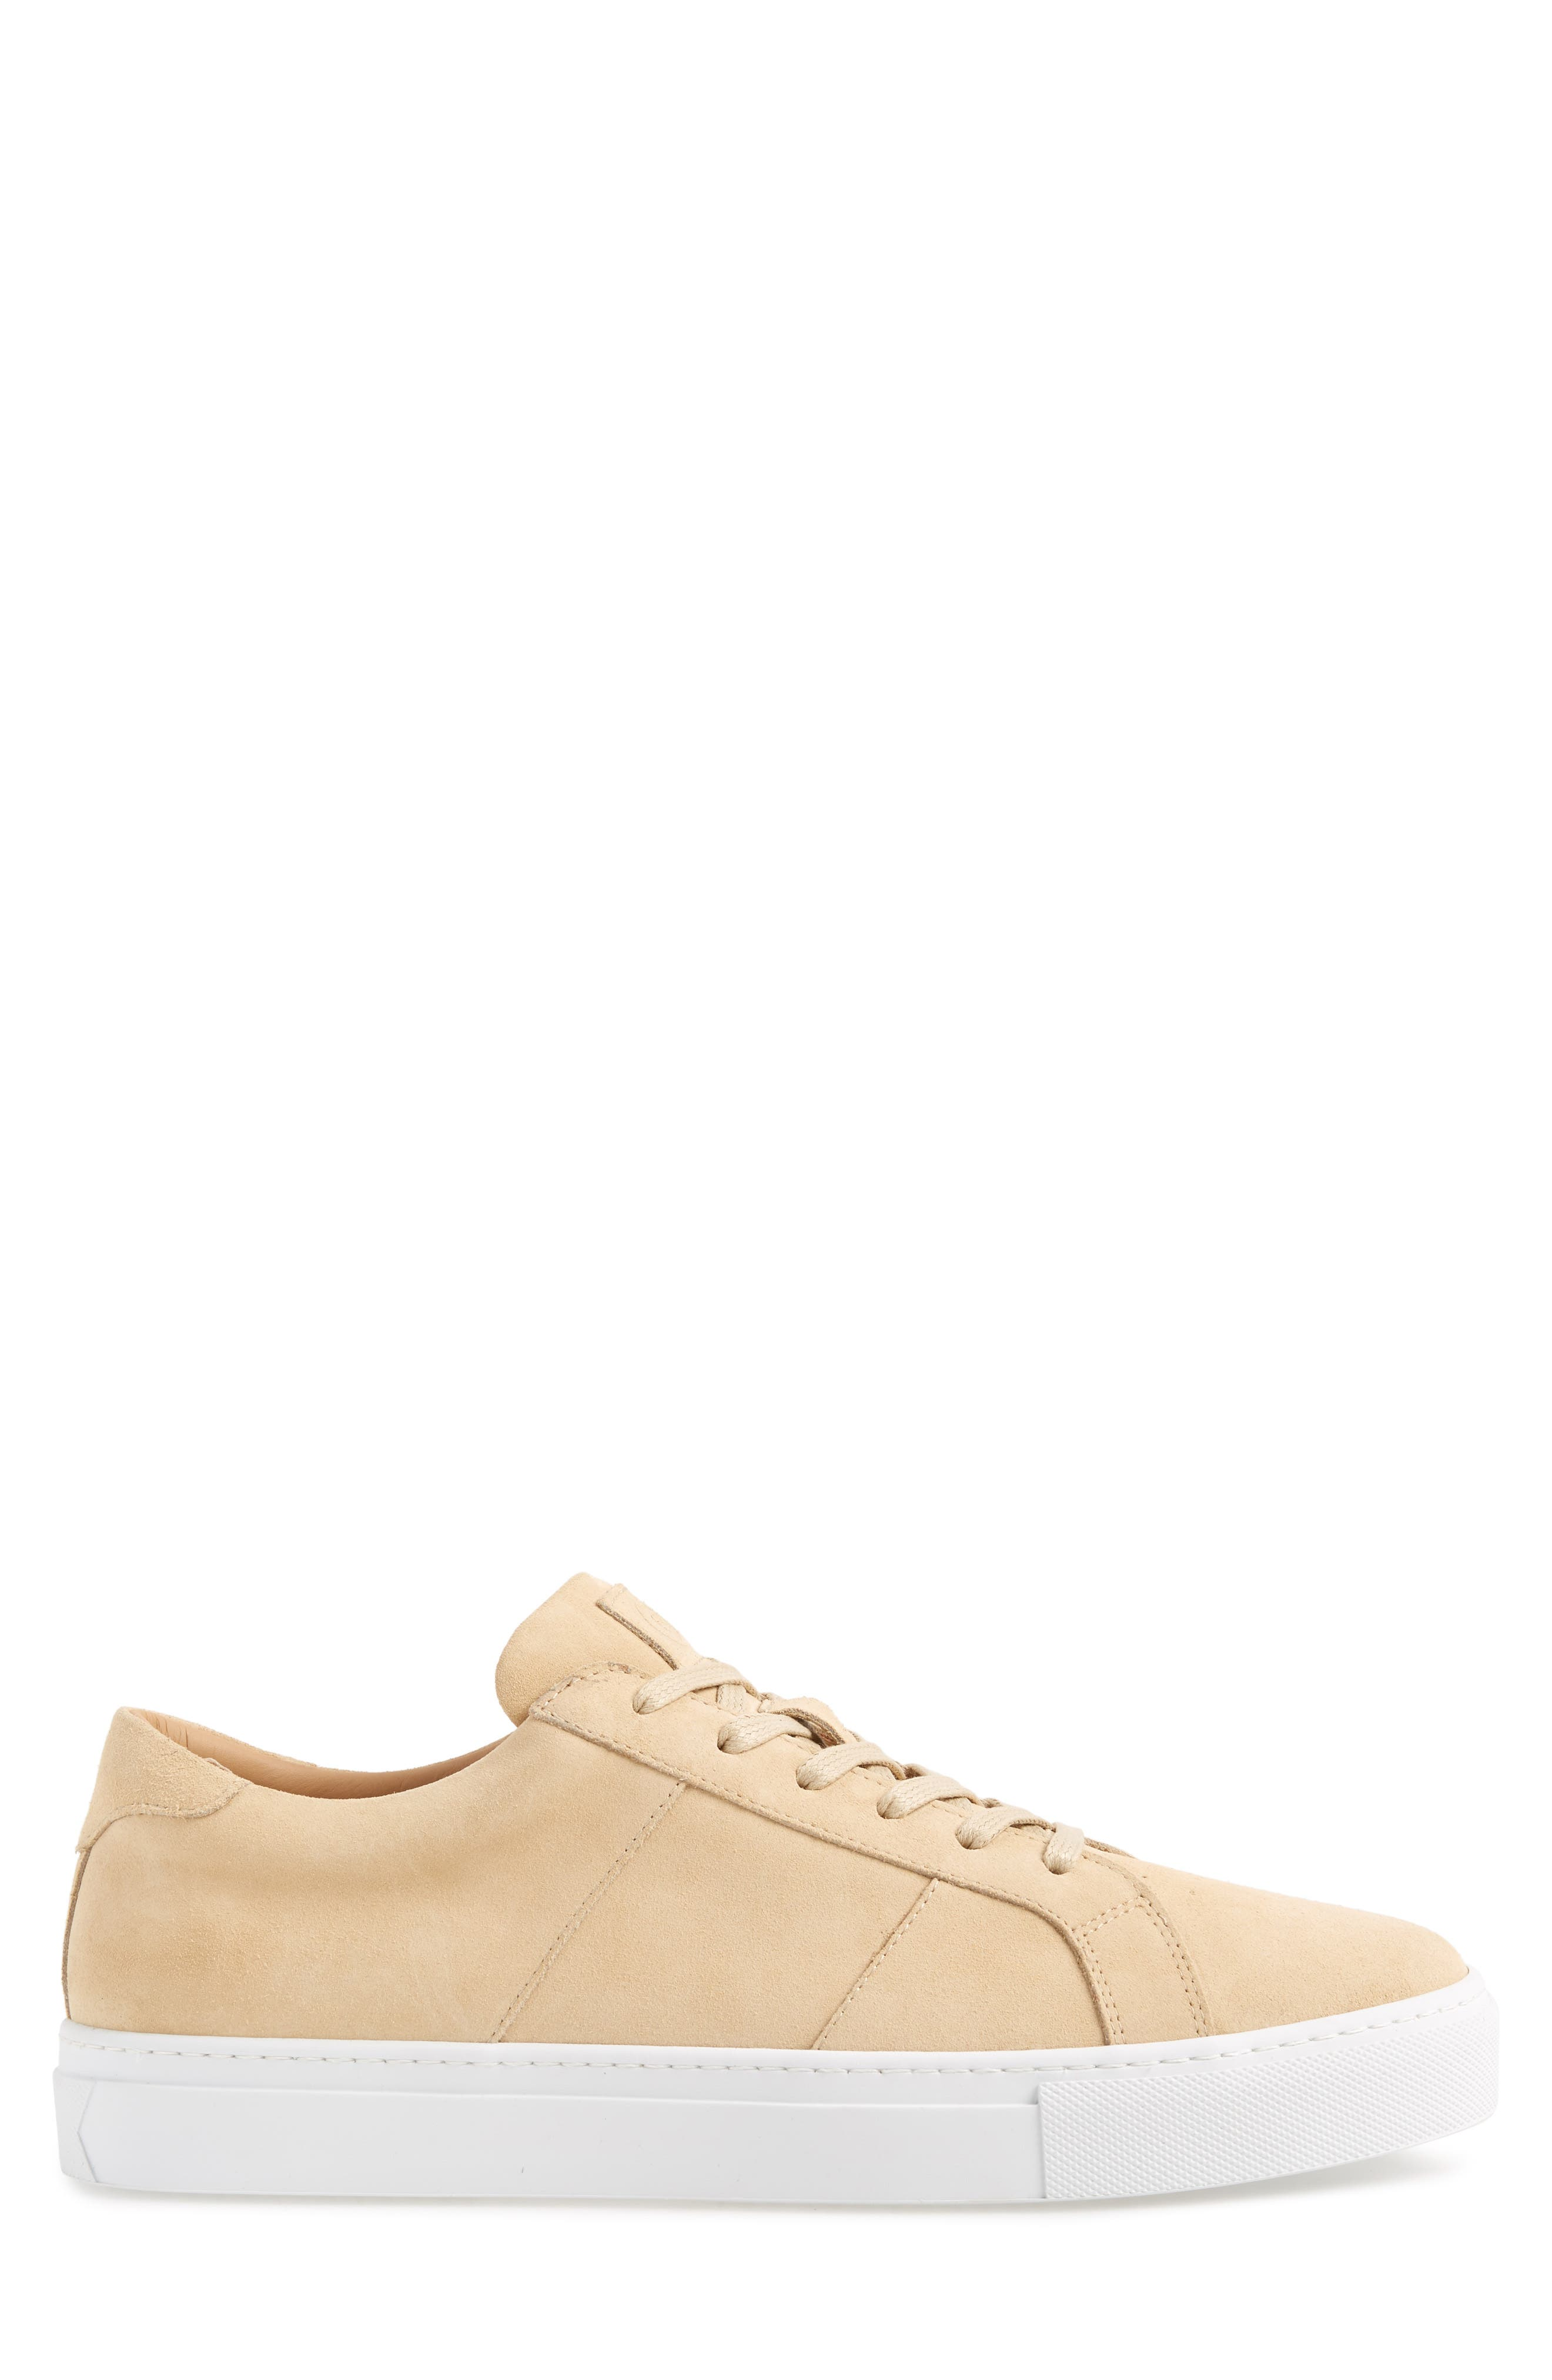 Nick Wooster x GREATS Royale Sneaker,                             Alternate thumbnail 3, color,                             250